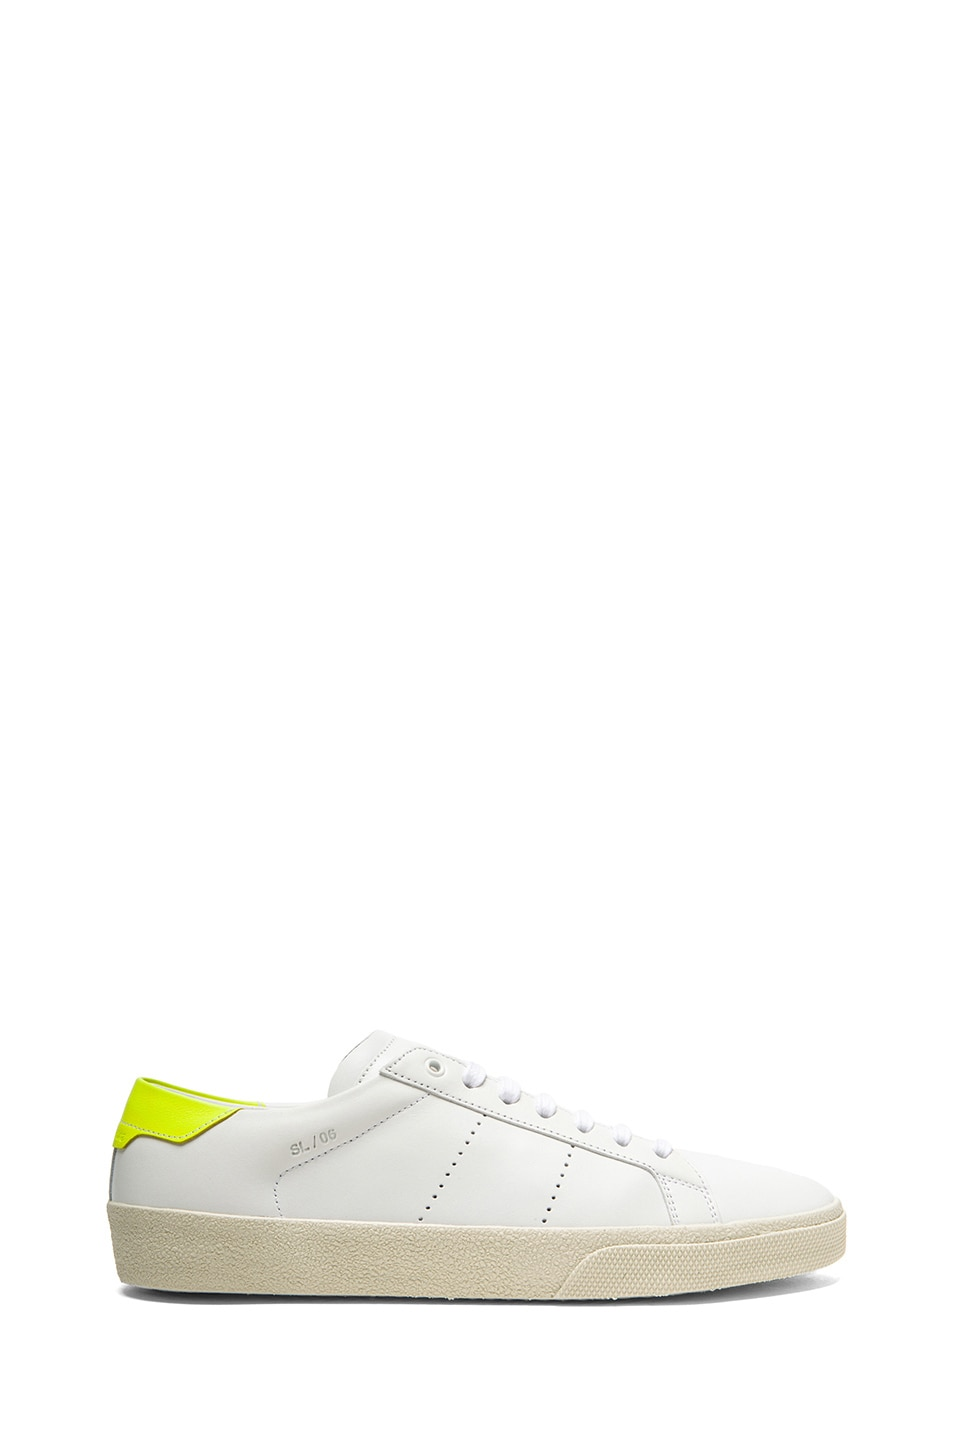 Image 1 of Saint Laurent Court Classic Leather Sneakers in Optic White & Neon Yellow